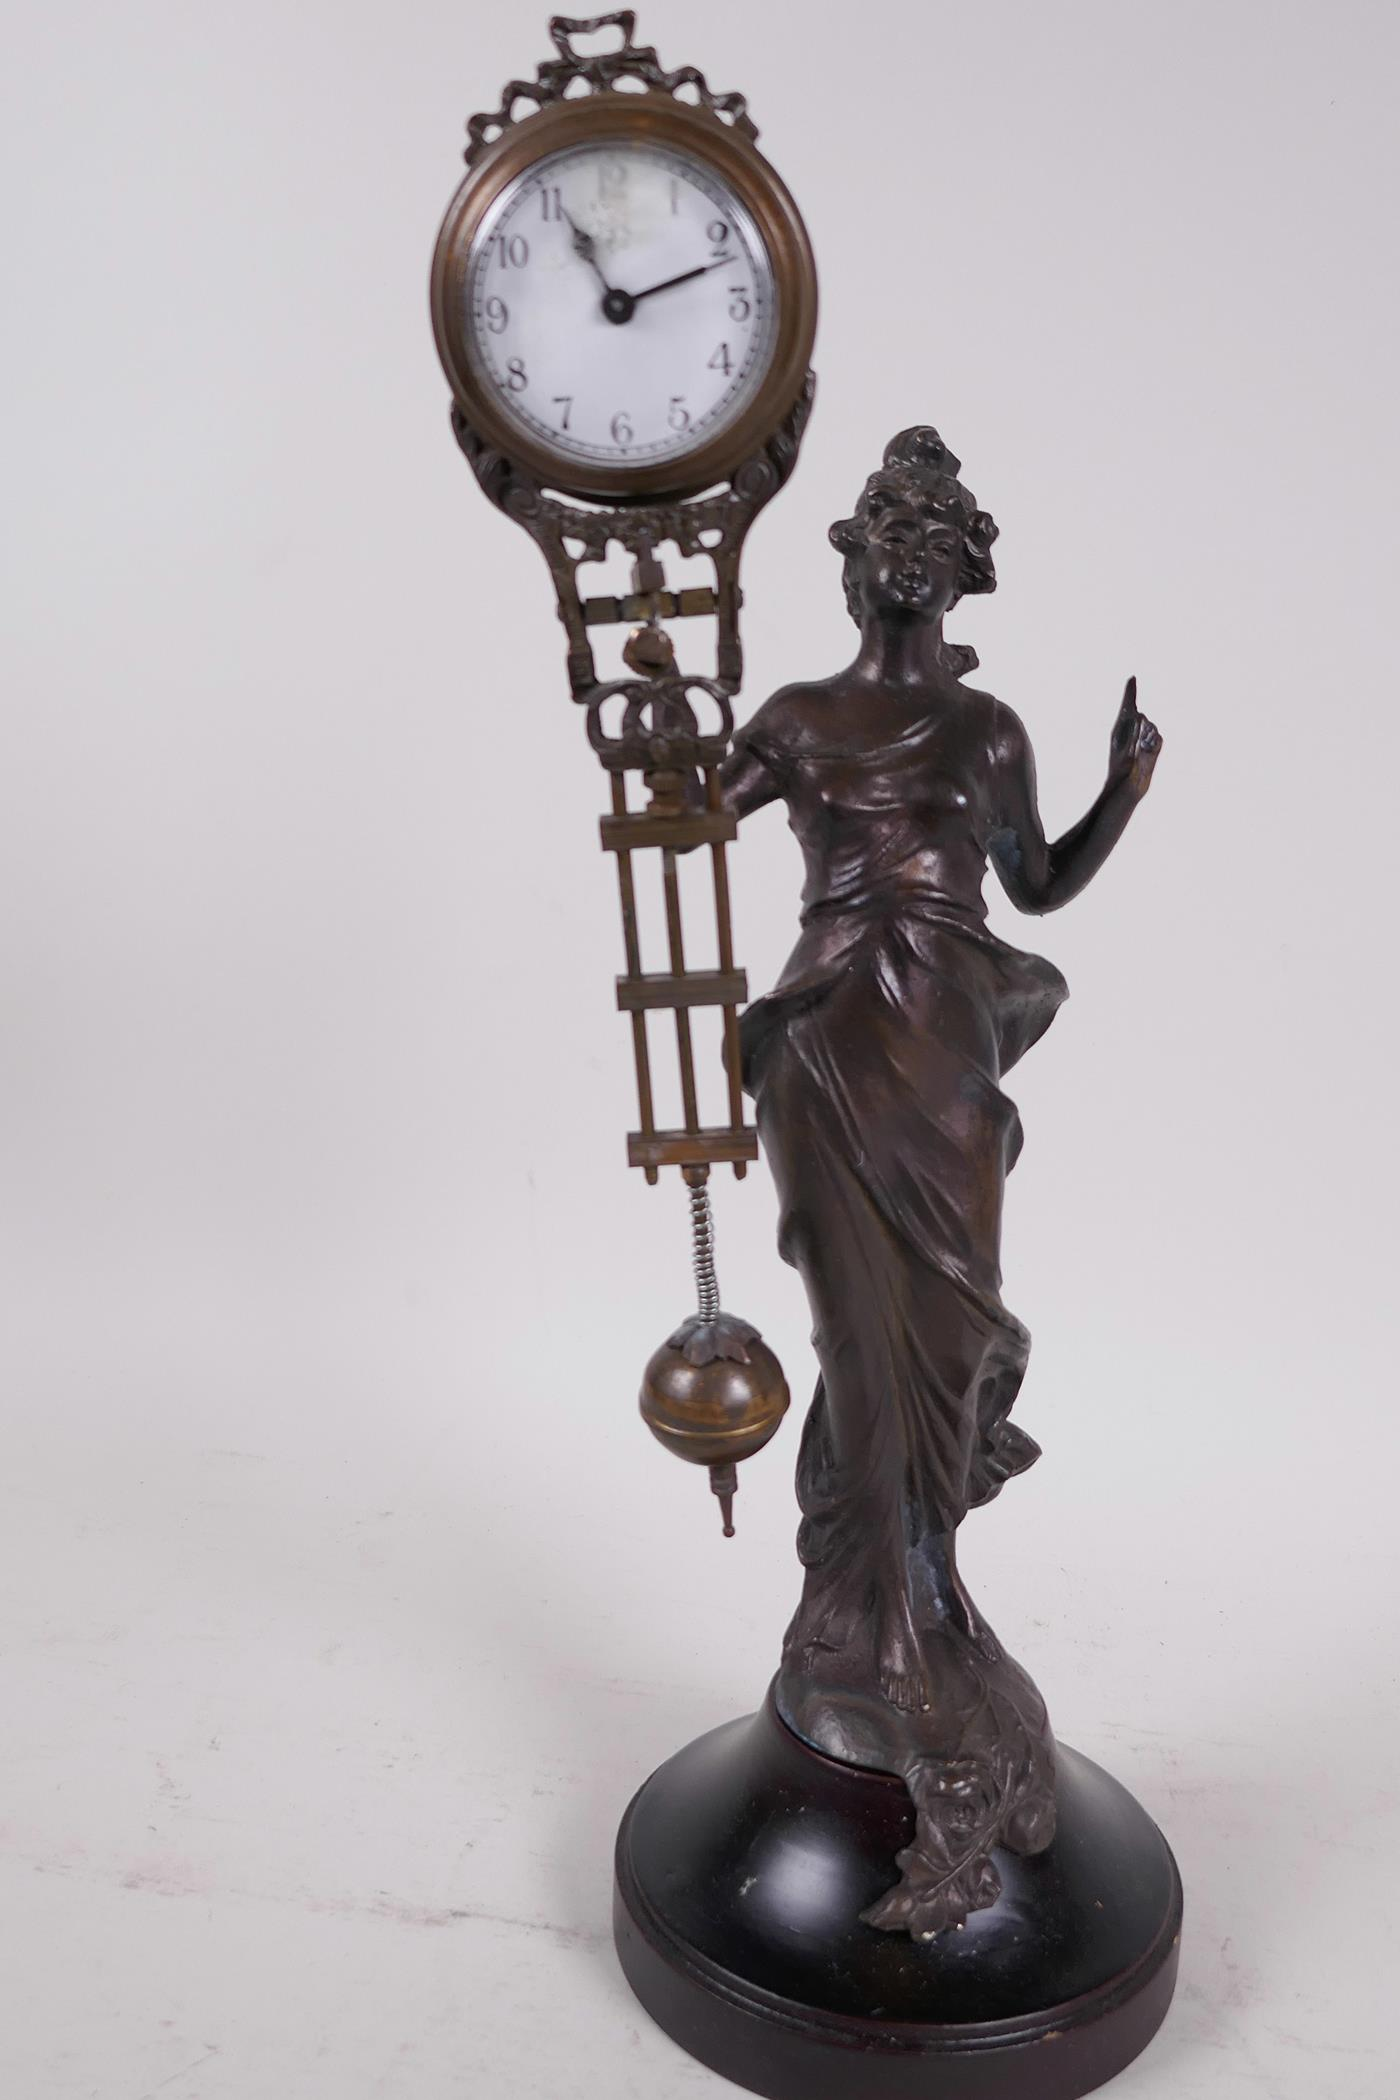 """A bronze mystery clock cast as an Art Nouveau style lady with the clock raised on one arm, 13"""" high"""